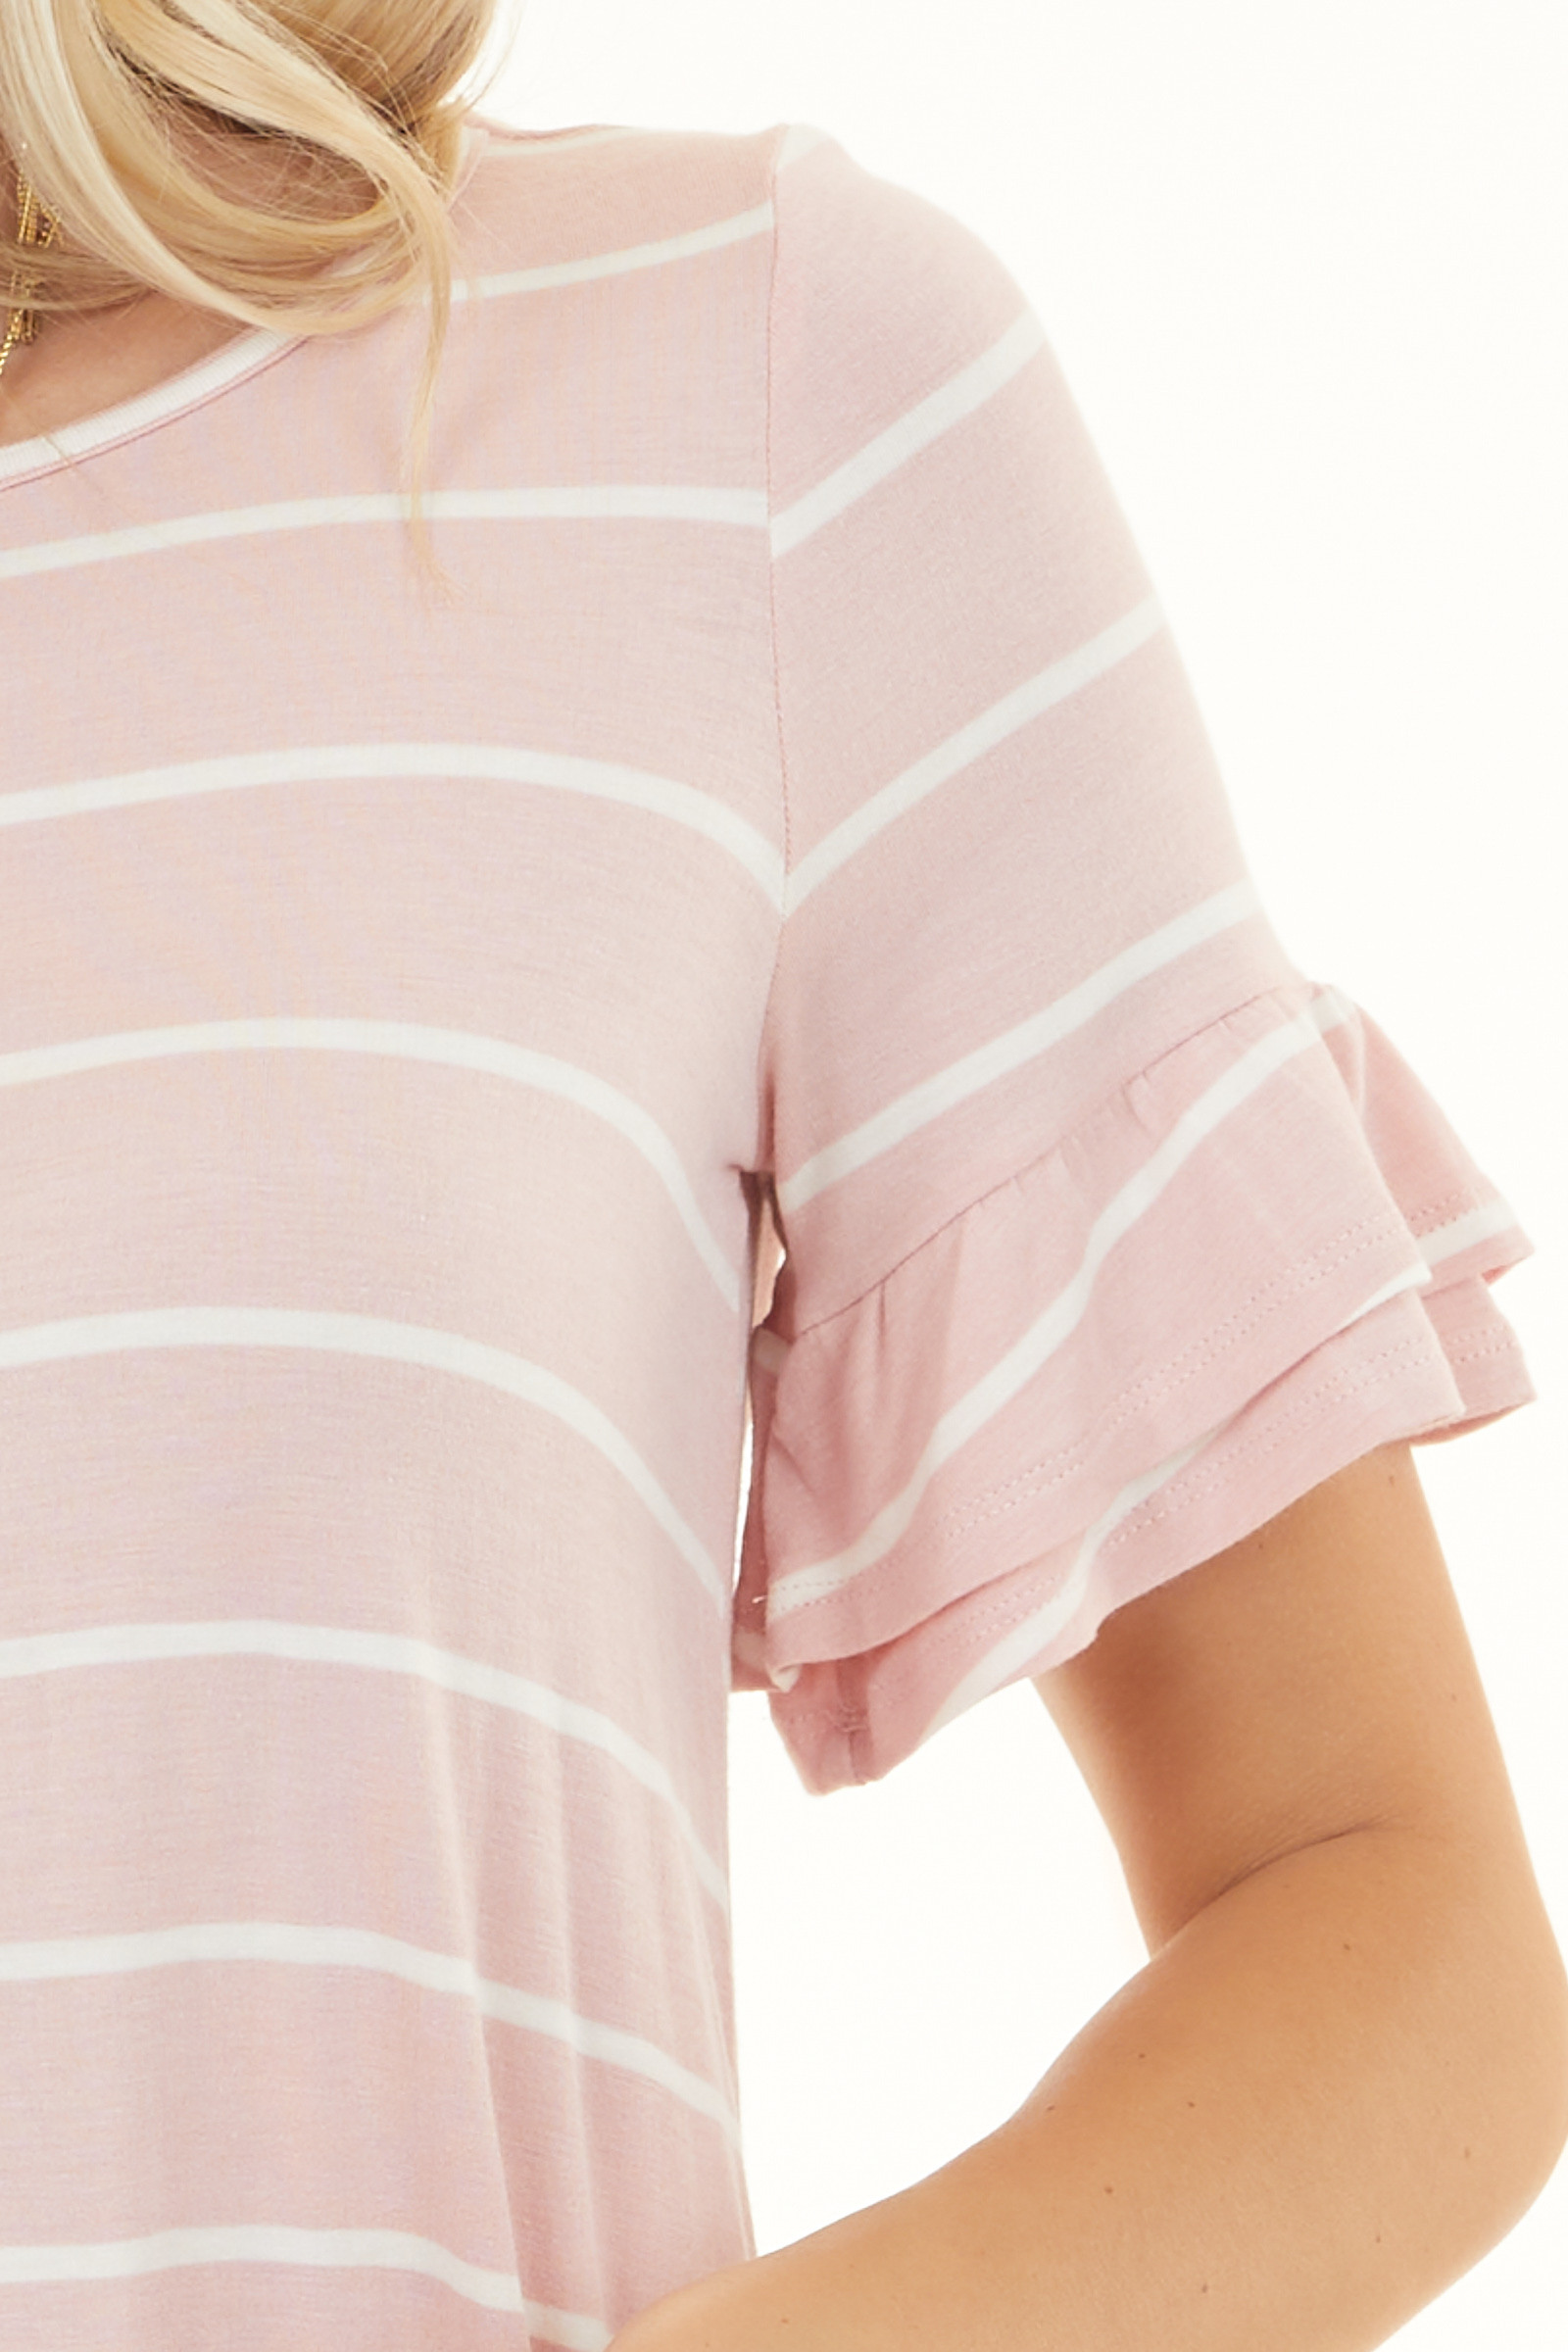 Blush and Ivory Striped Top with Short Tiered Ruffle Sleeves